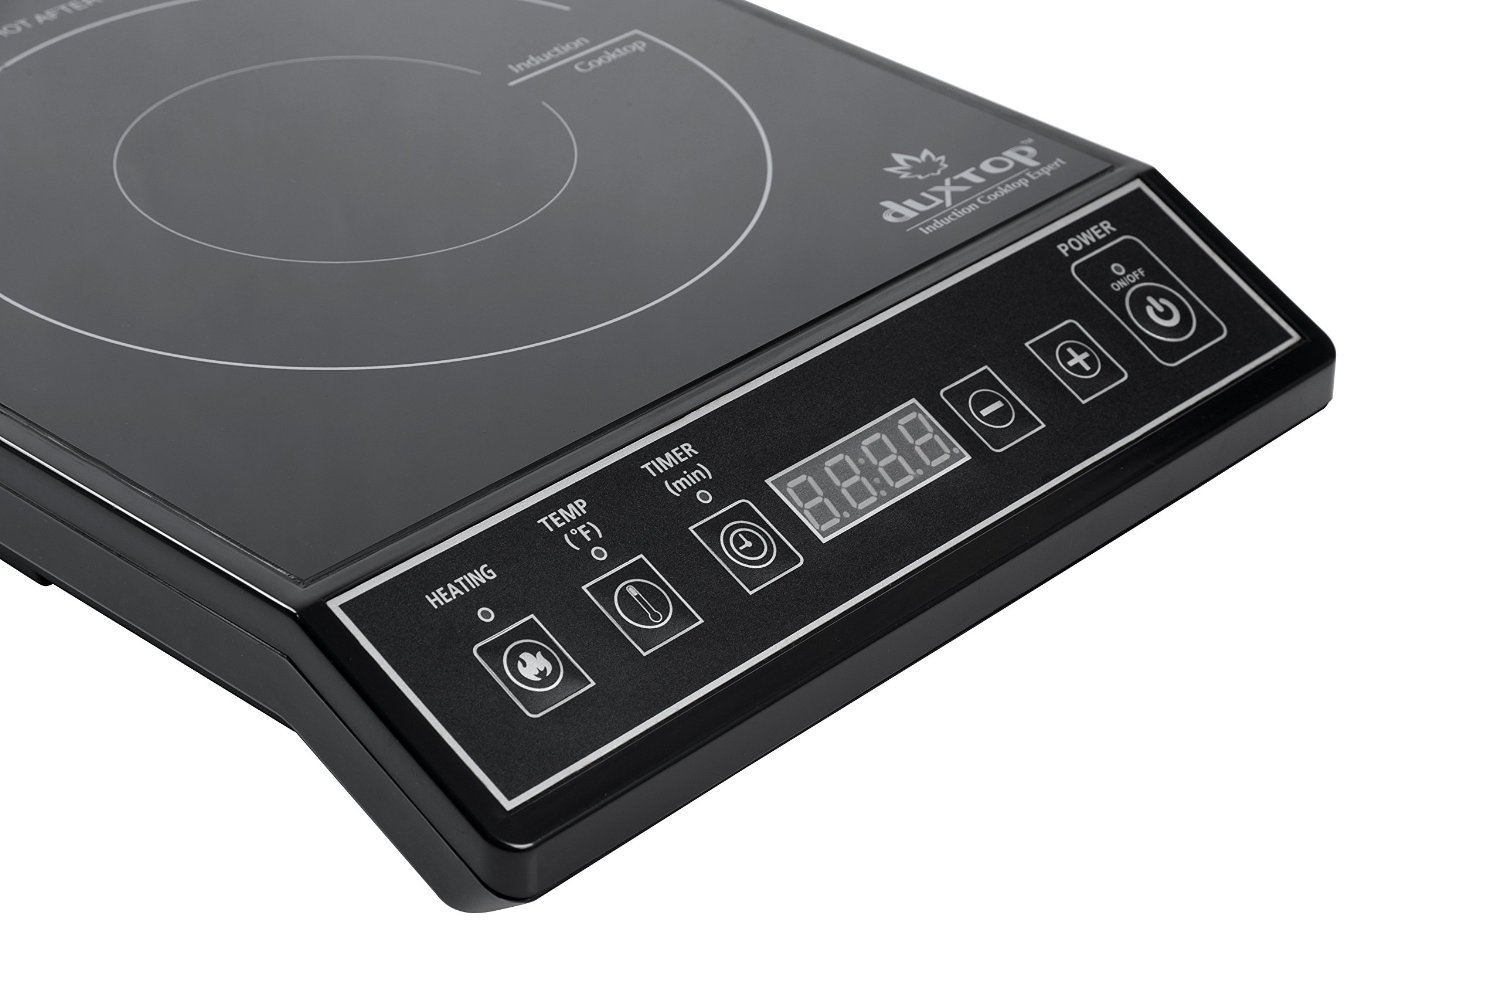 duxtop induction cooktop 9100mc controls